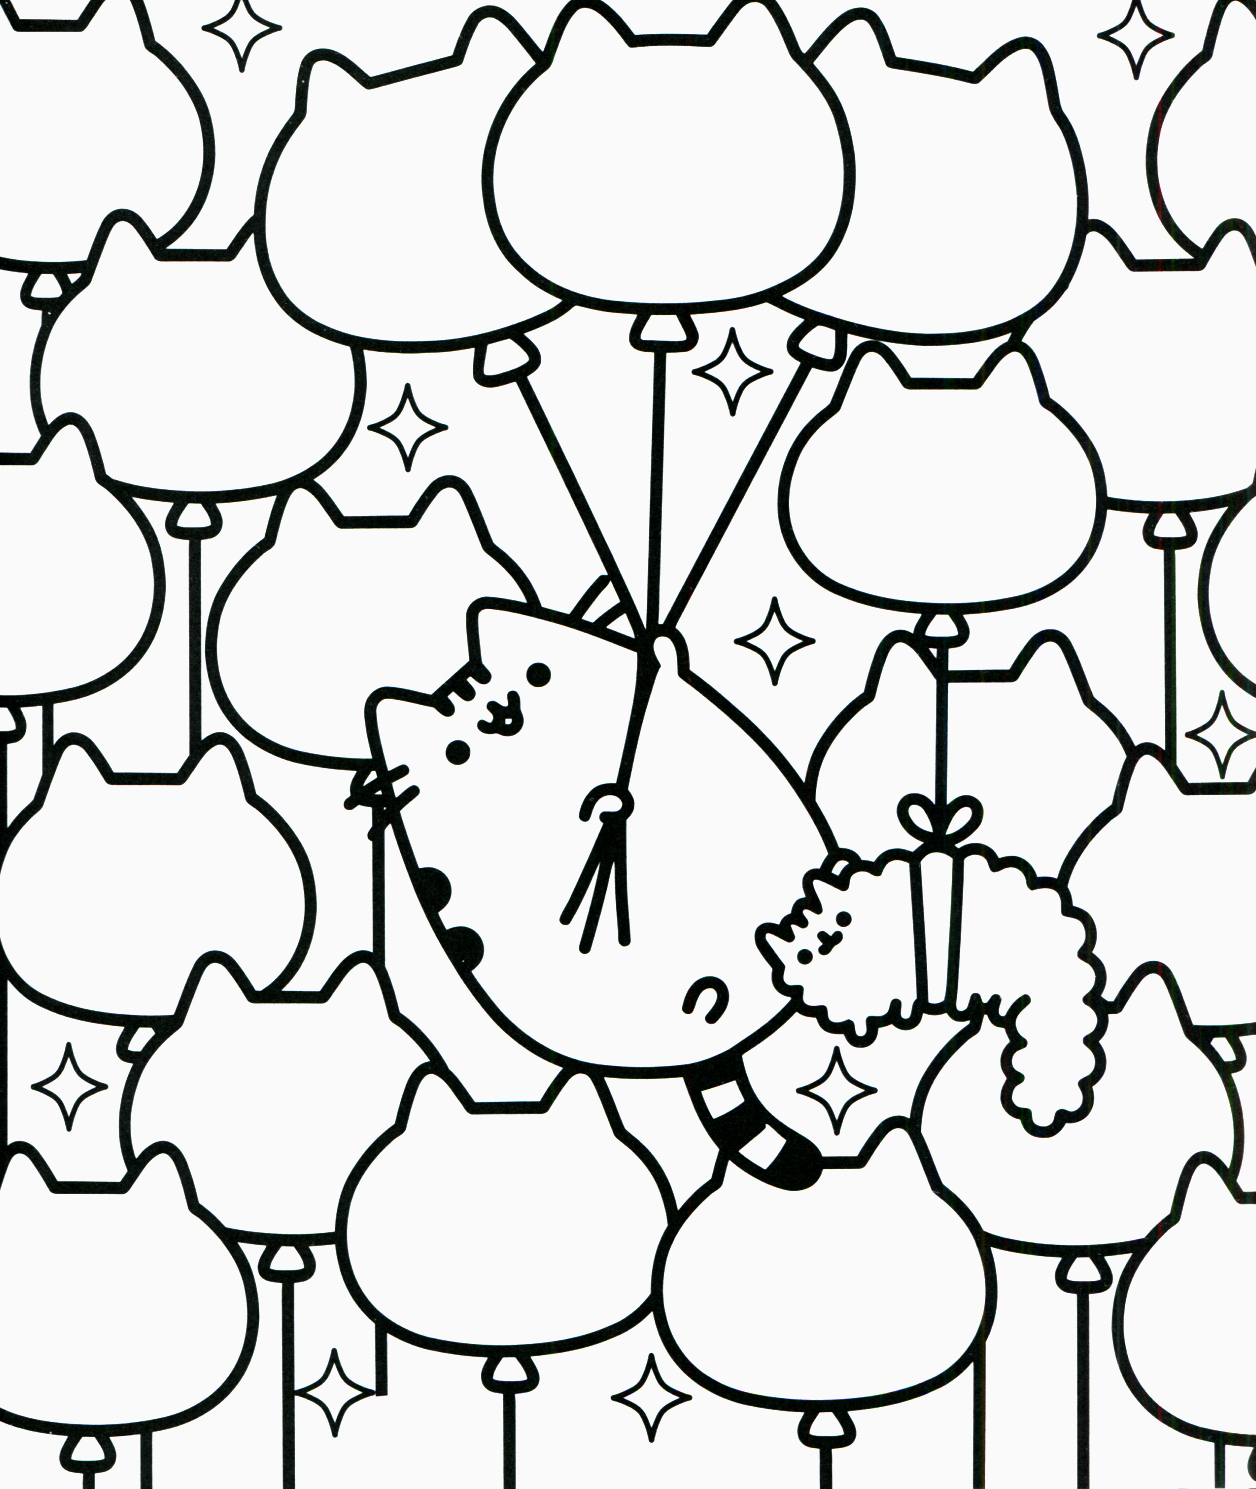 Pusheen Coloring Pages Printable | Database Coloring Page Ideas